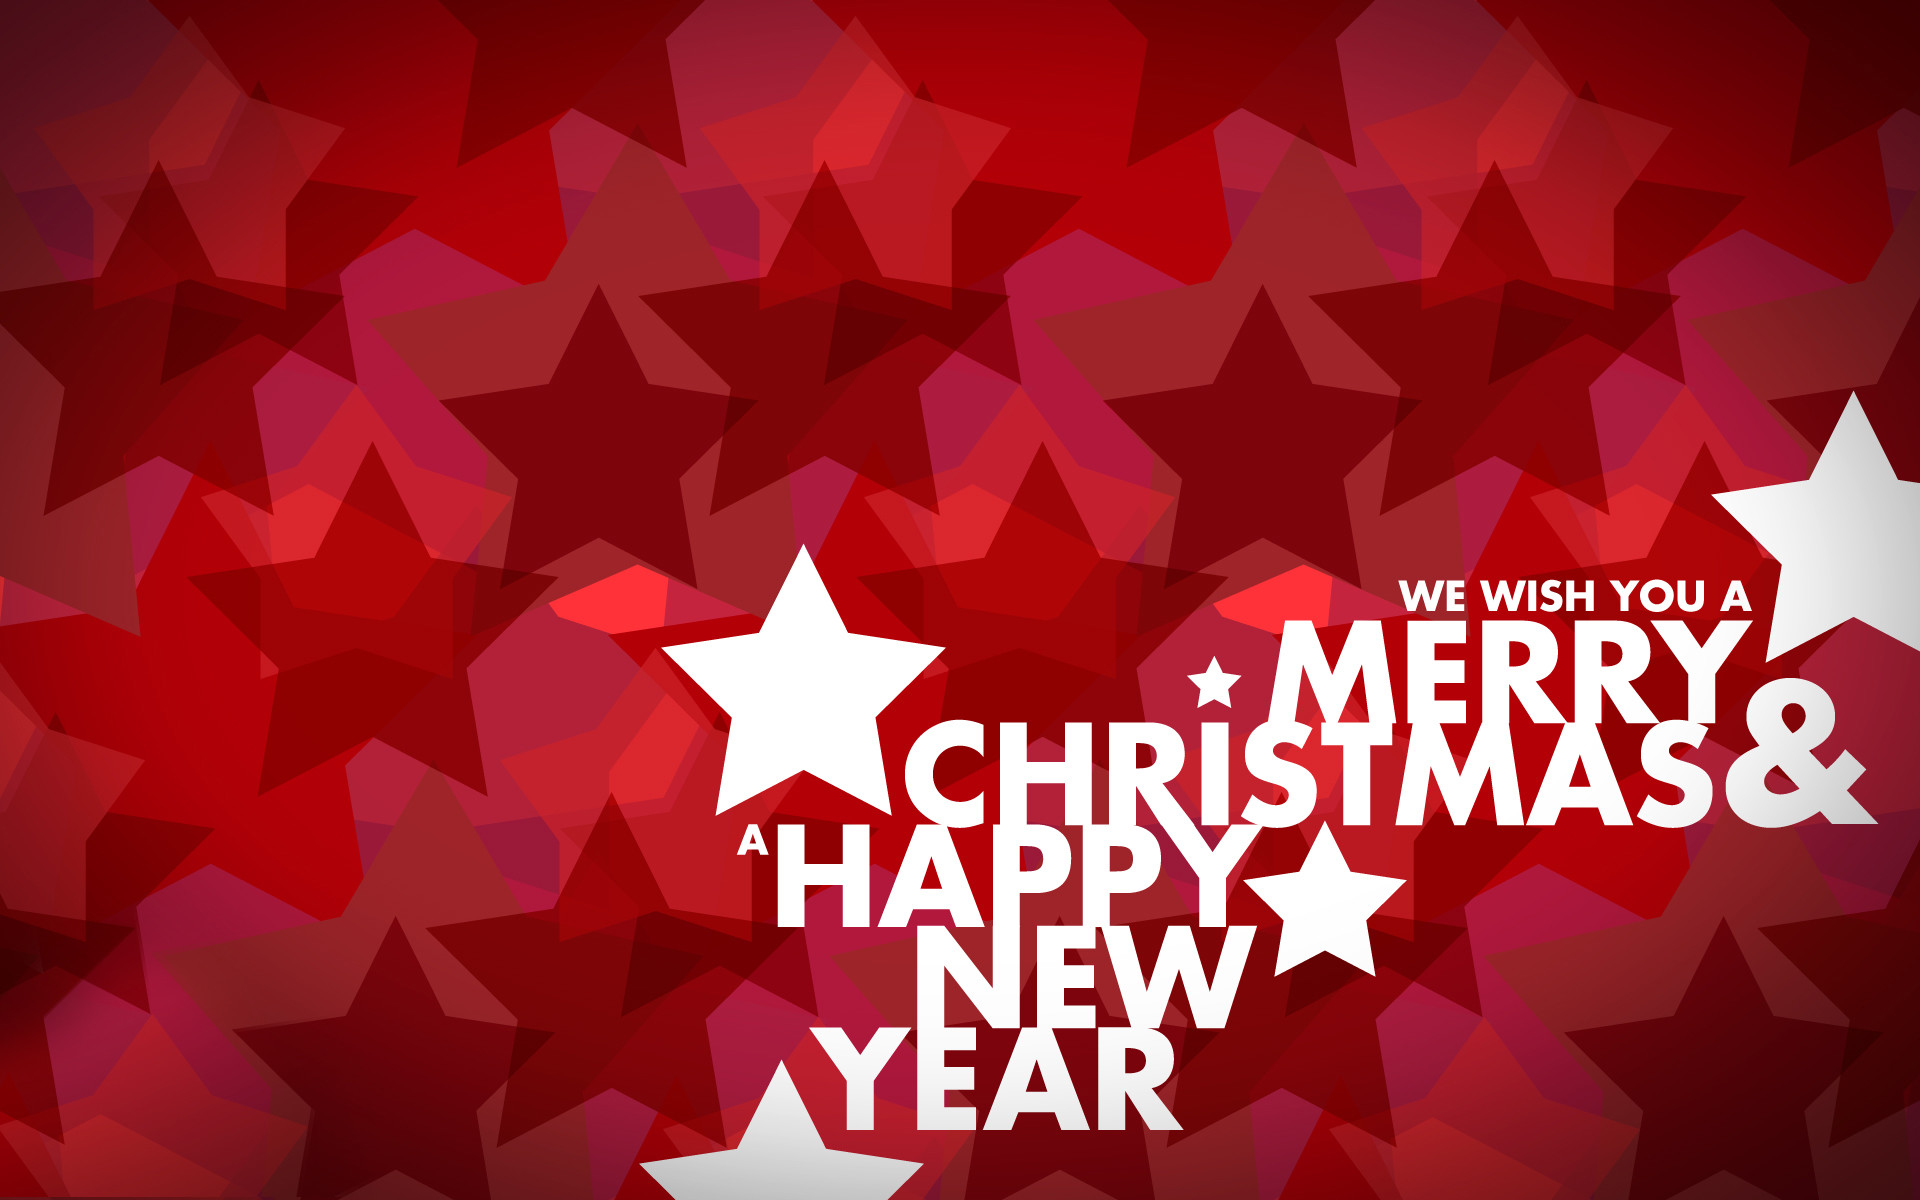 Best Merry Christmas and Happy New Year Wallpapers